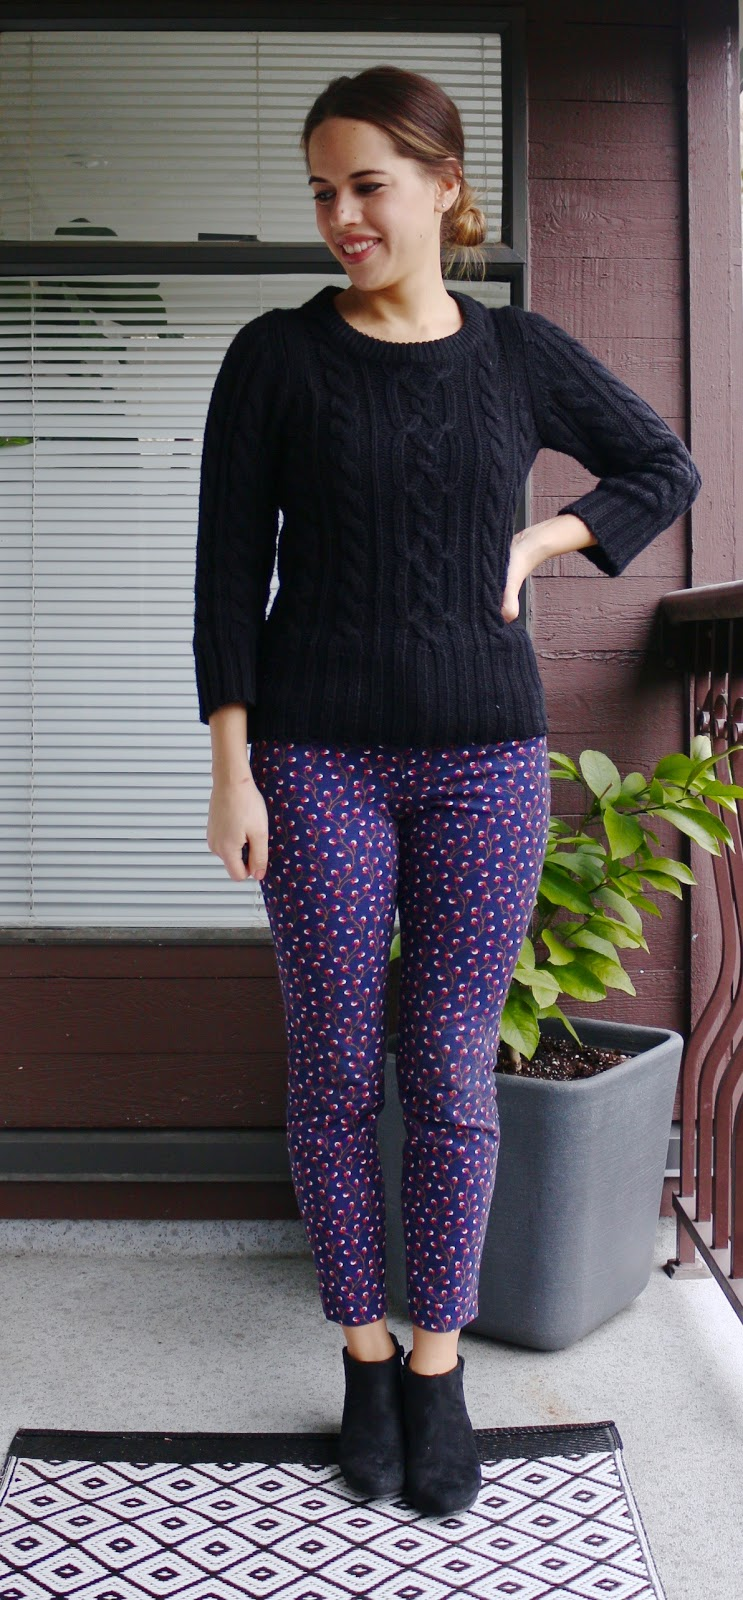 Jules in Flats - January Work Outfits (Cable-knit Sweater with patterned Pixie pants)